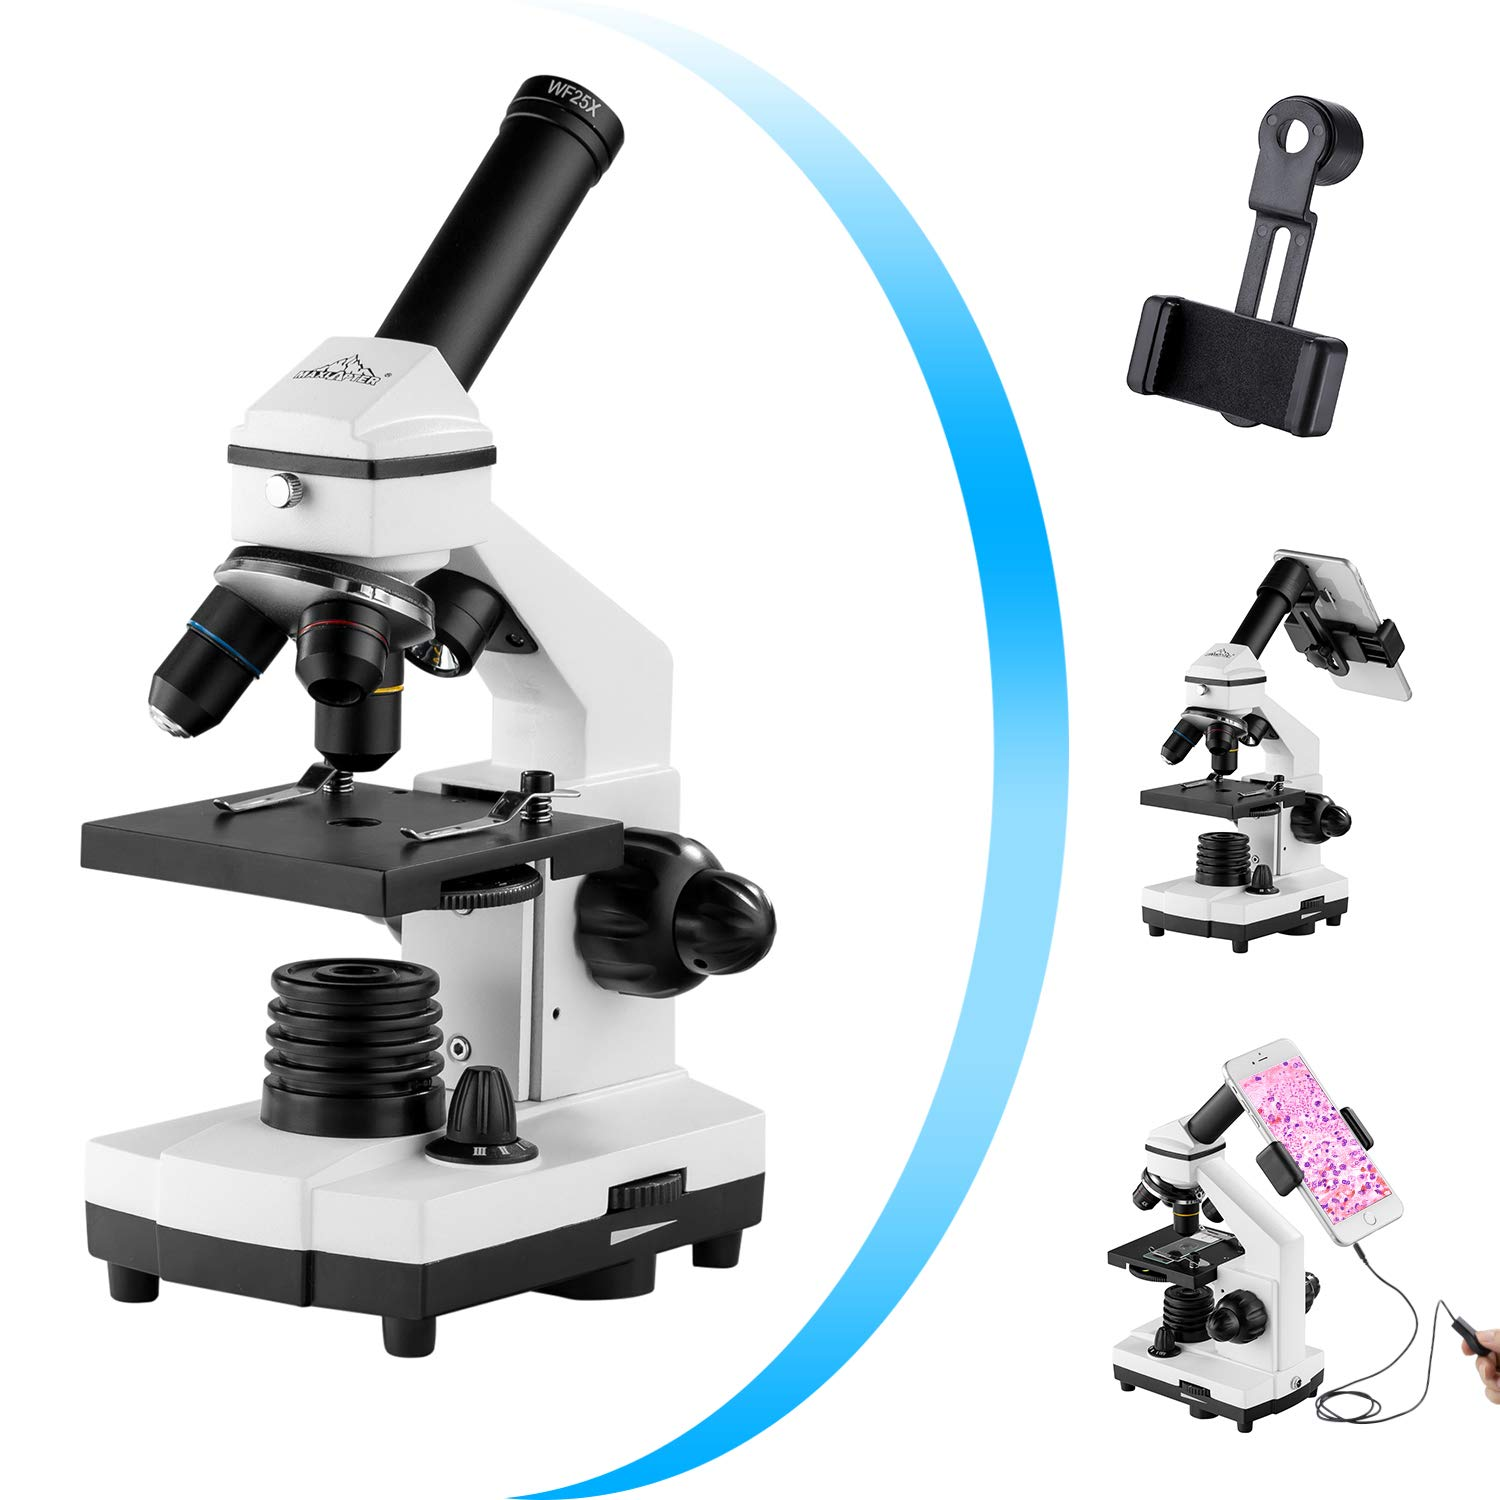 MAXLAPTER Monocular Microscope for Students,200x-2000x Magnification Powerful Biological Educational Microscope with Operating Accessories,Slides Set,Phone Adapter,Wire Shutter, Carrying Bag